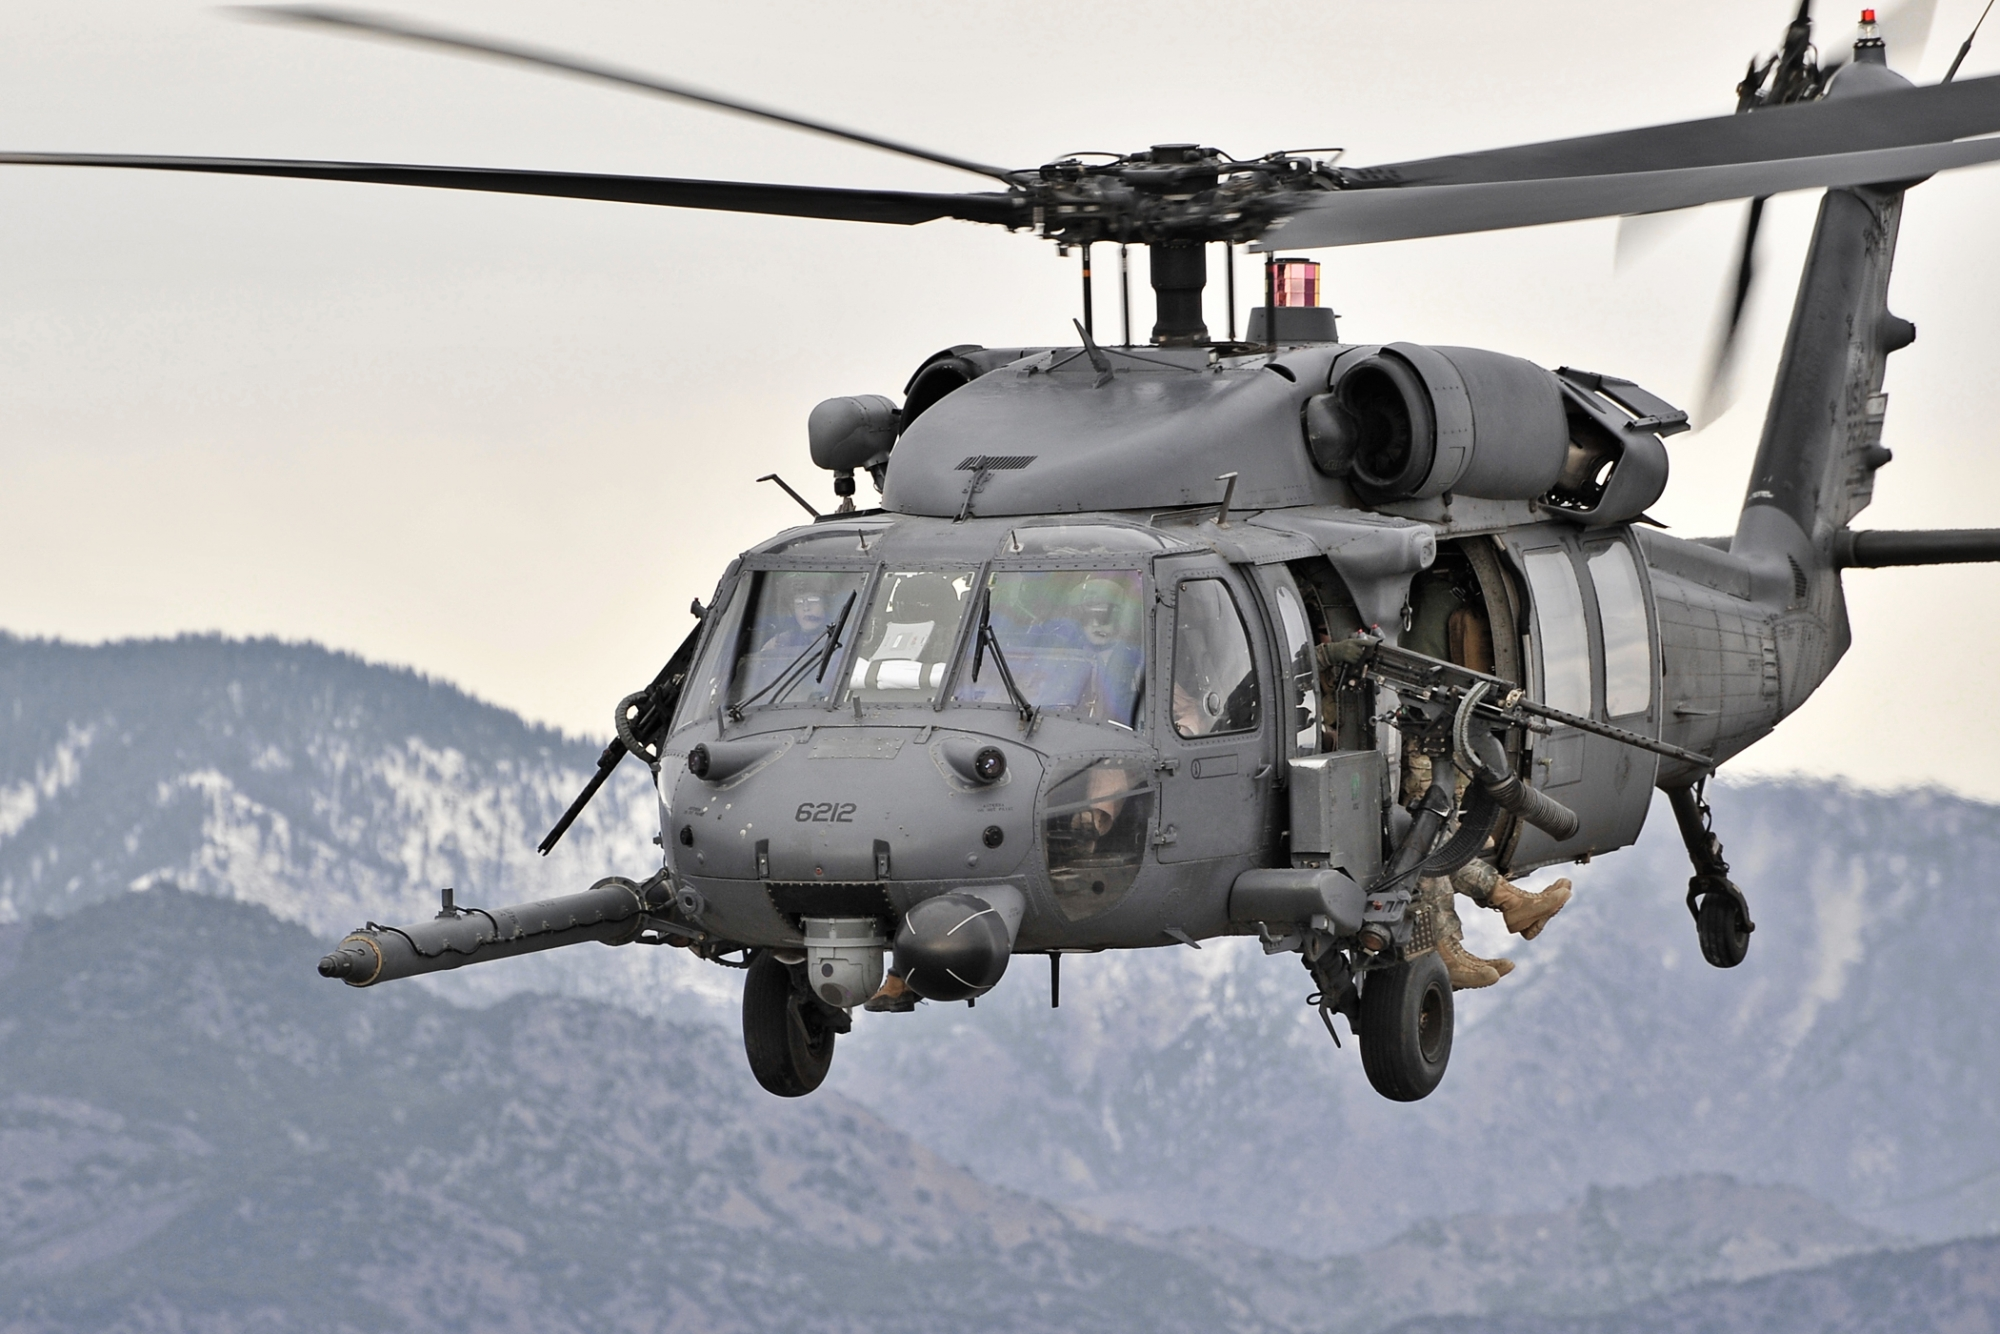 Blackhawk Helicopter – Special operations | Weapons and ...